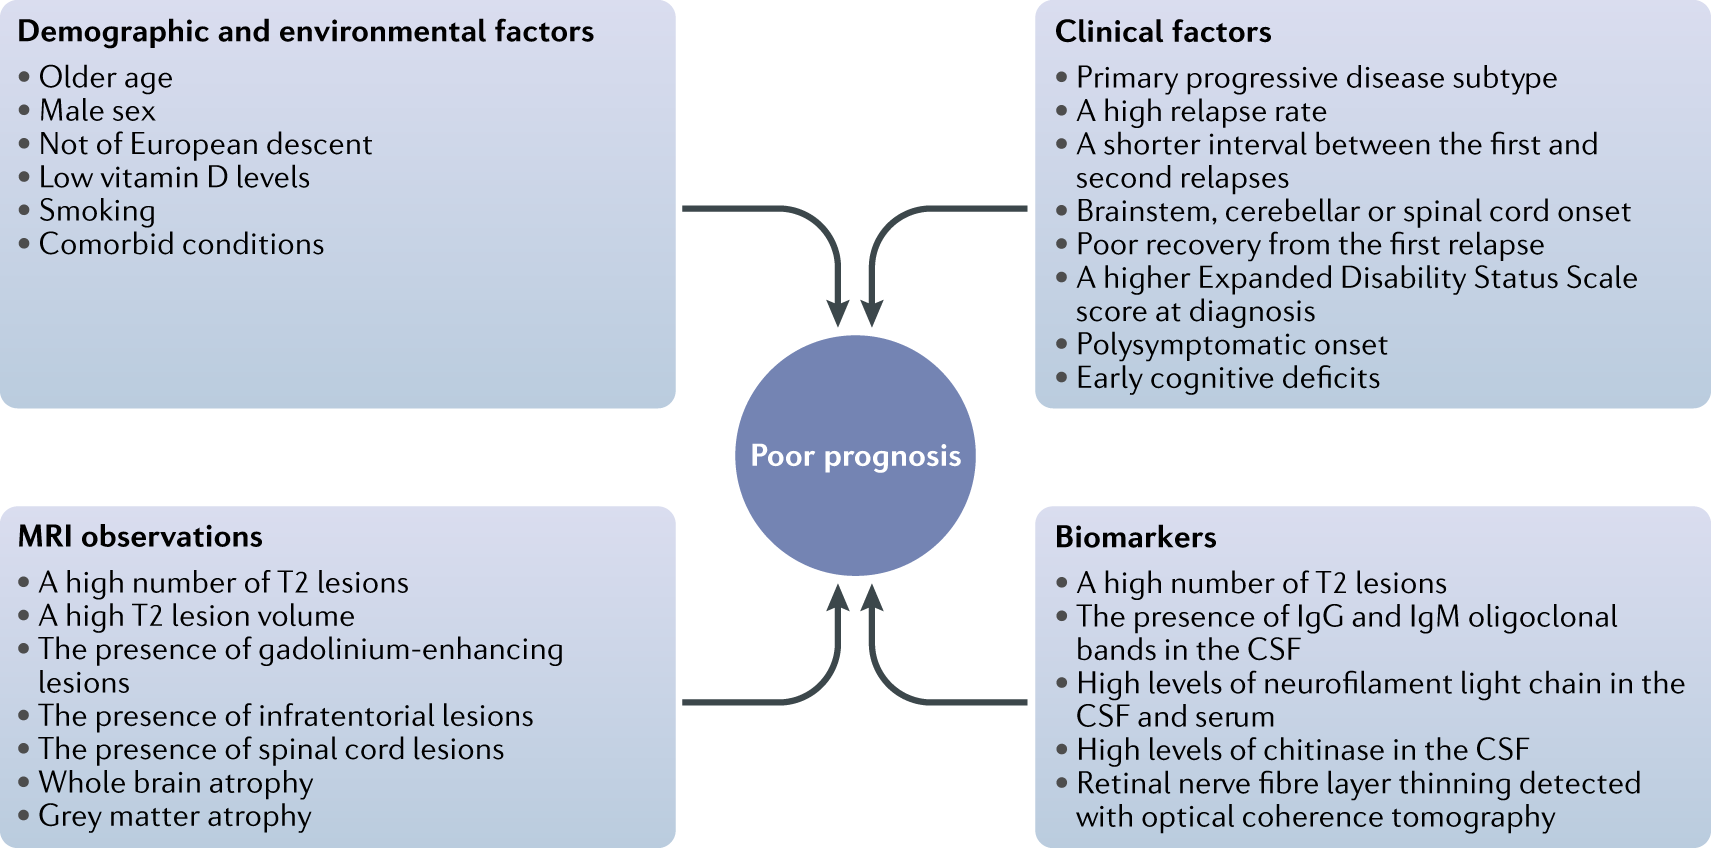 Reaching an evidence-based prognosis for personalized treatment of